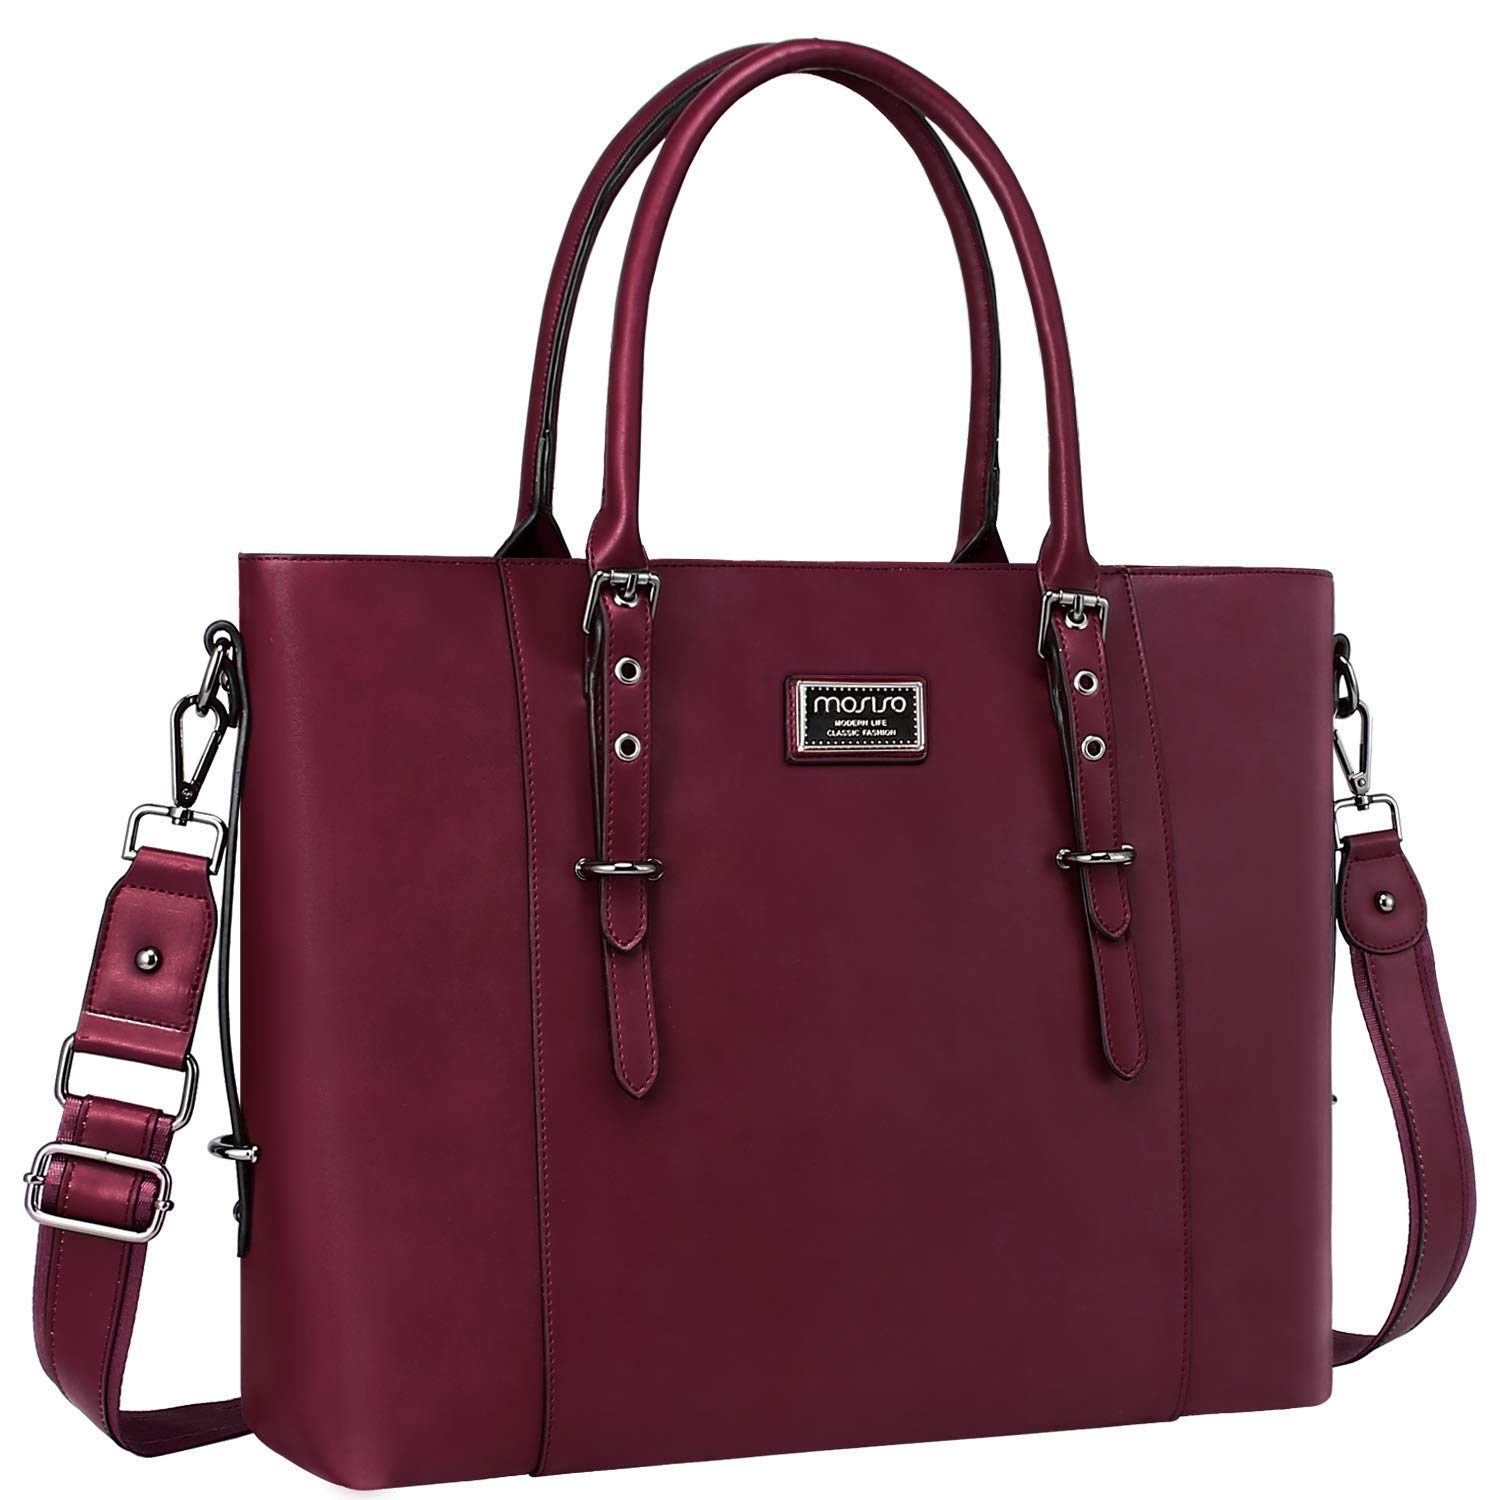 MOSISO PU Leather Laptop Tote Bag for Women Up to 17.3 inch Brown